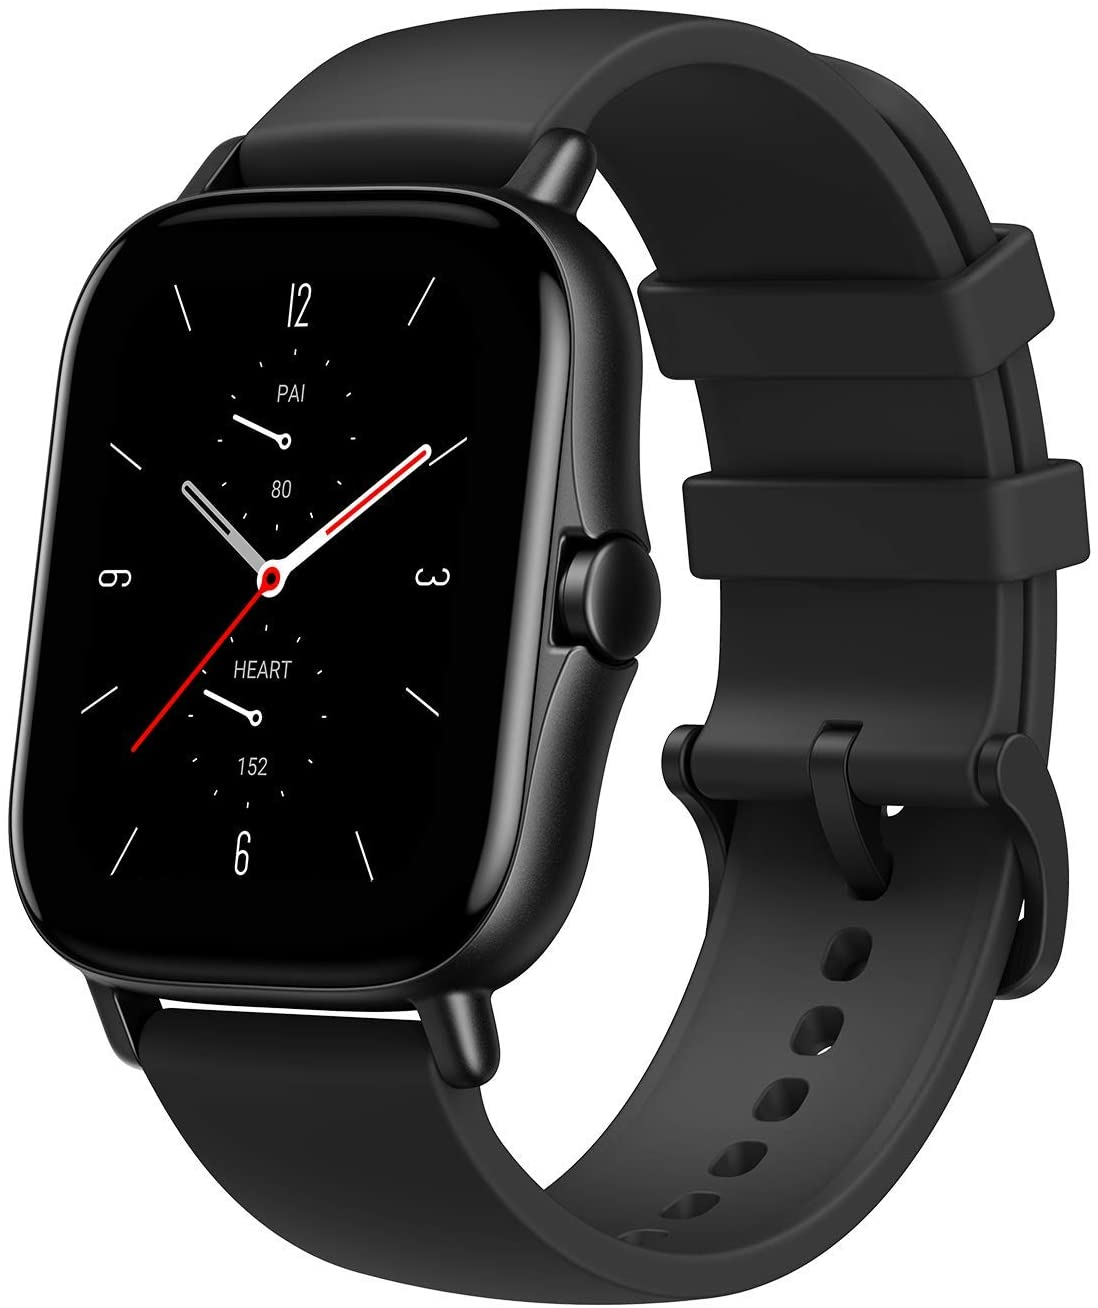 """Amazfit GTS 2 Smartwatch with Alexa Built-In, 1.65"""" AMOLED Display, Built-In GPS, 3GB Music Storage, 7-Day Battery Life, Bluetooth Phone Calls, 12 Sports Modes, Health Tracking, Water Resistant, Black"""